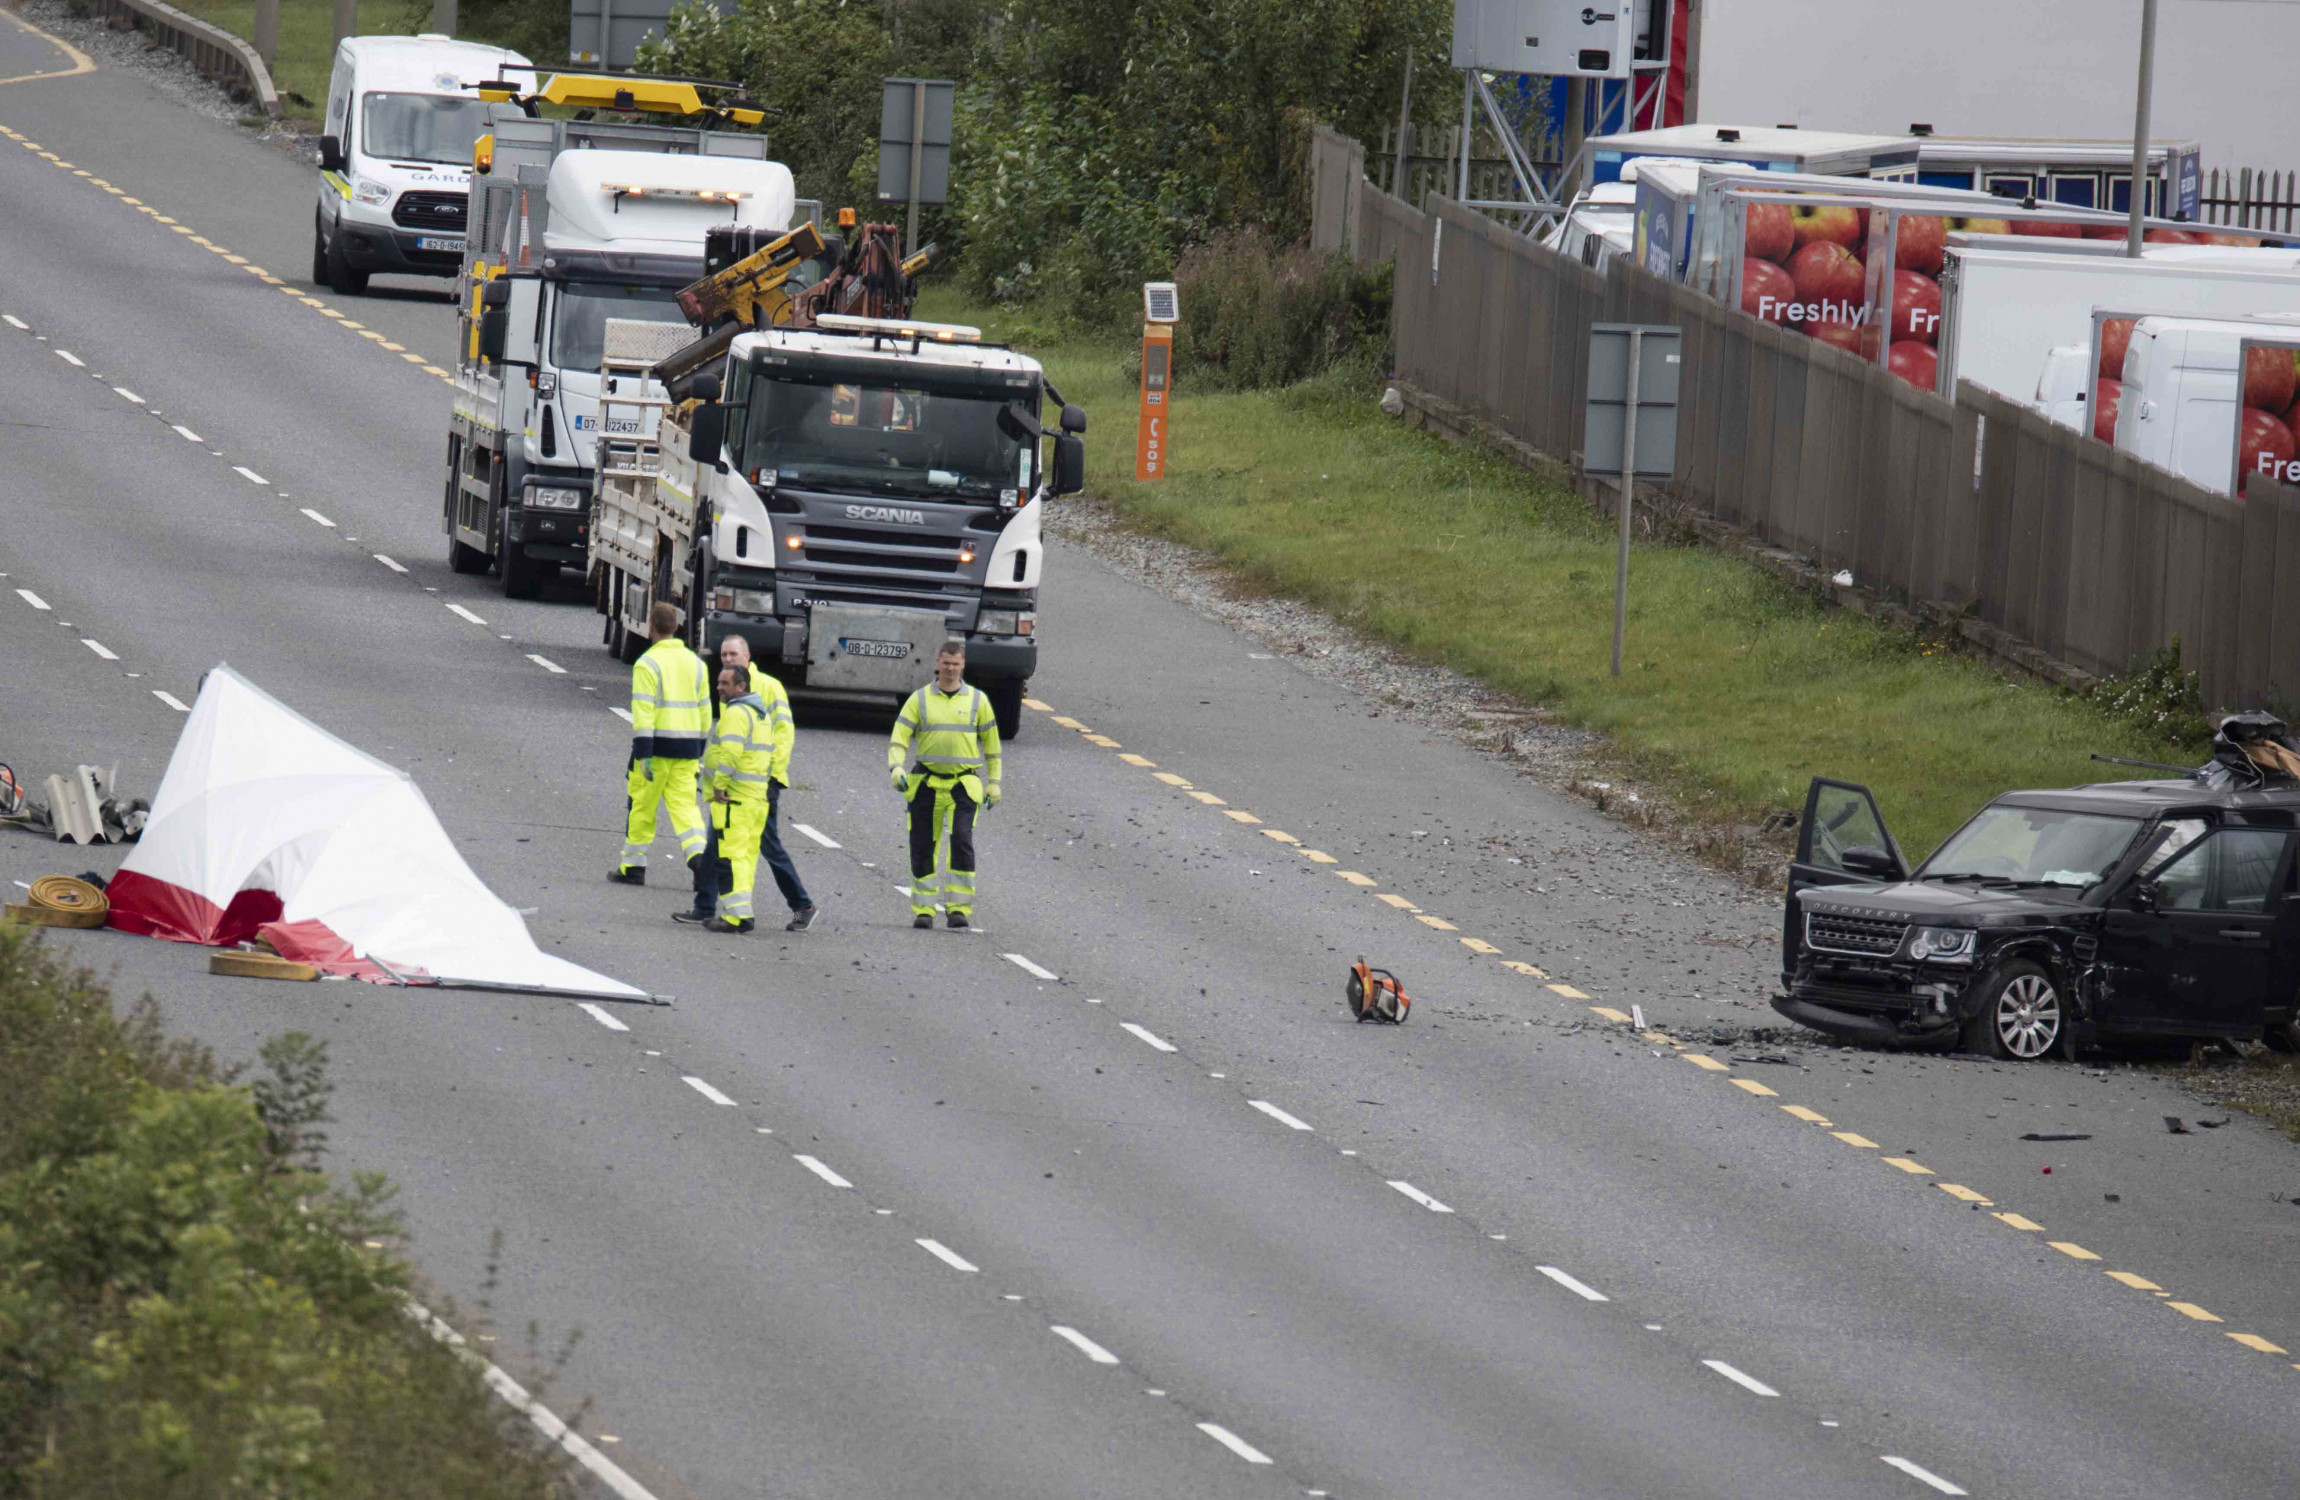 Man Dies After Crash On N7 In Dublin